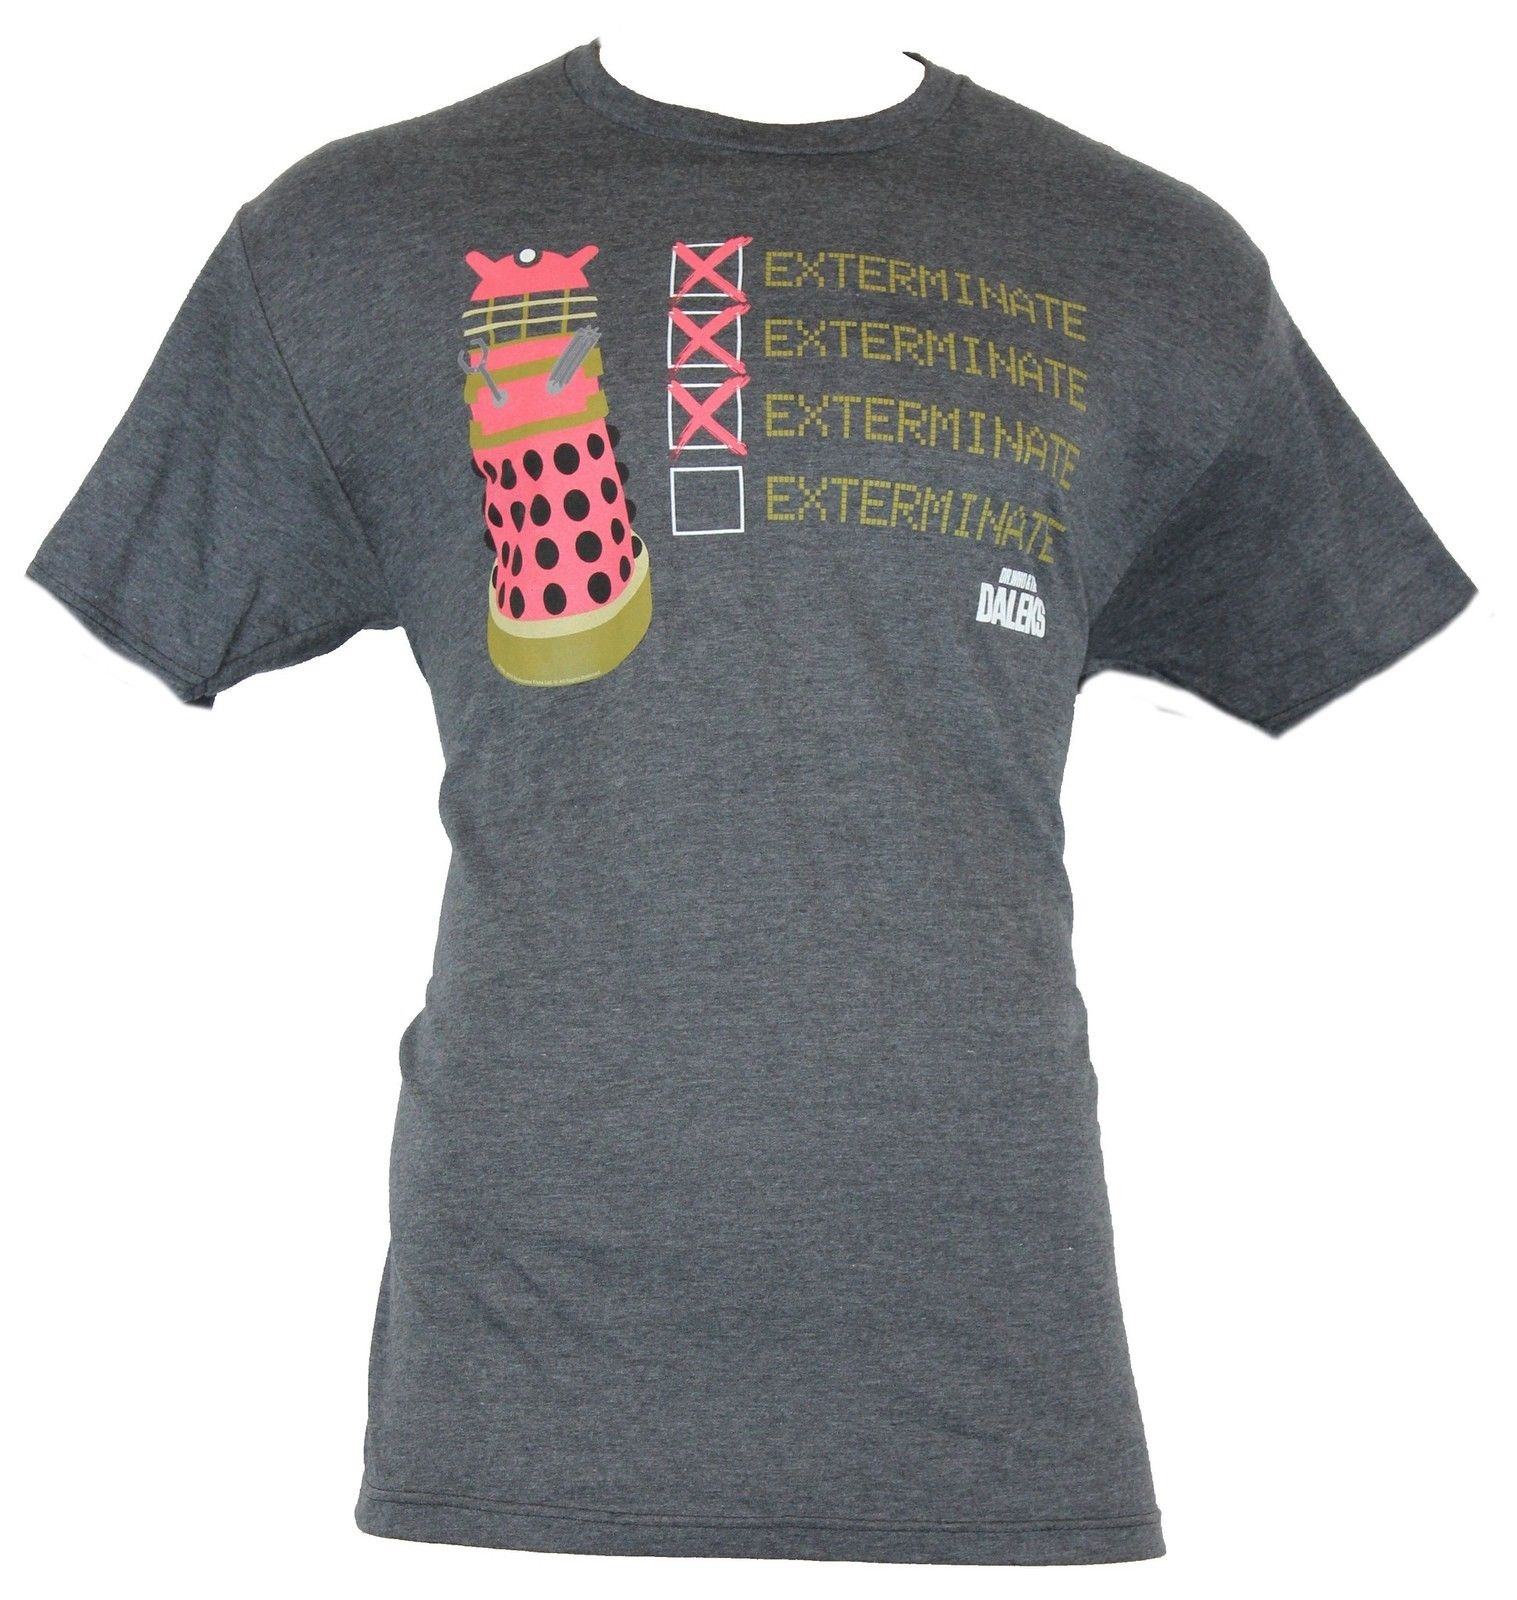 DOCTOR WHO GREY DALEK TEE T SHIRT EXTERMINATE SIZE MEDIUM AND LARGE